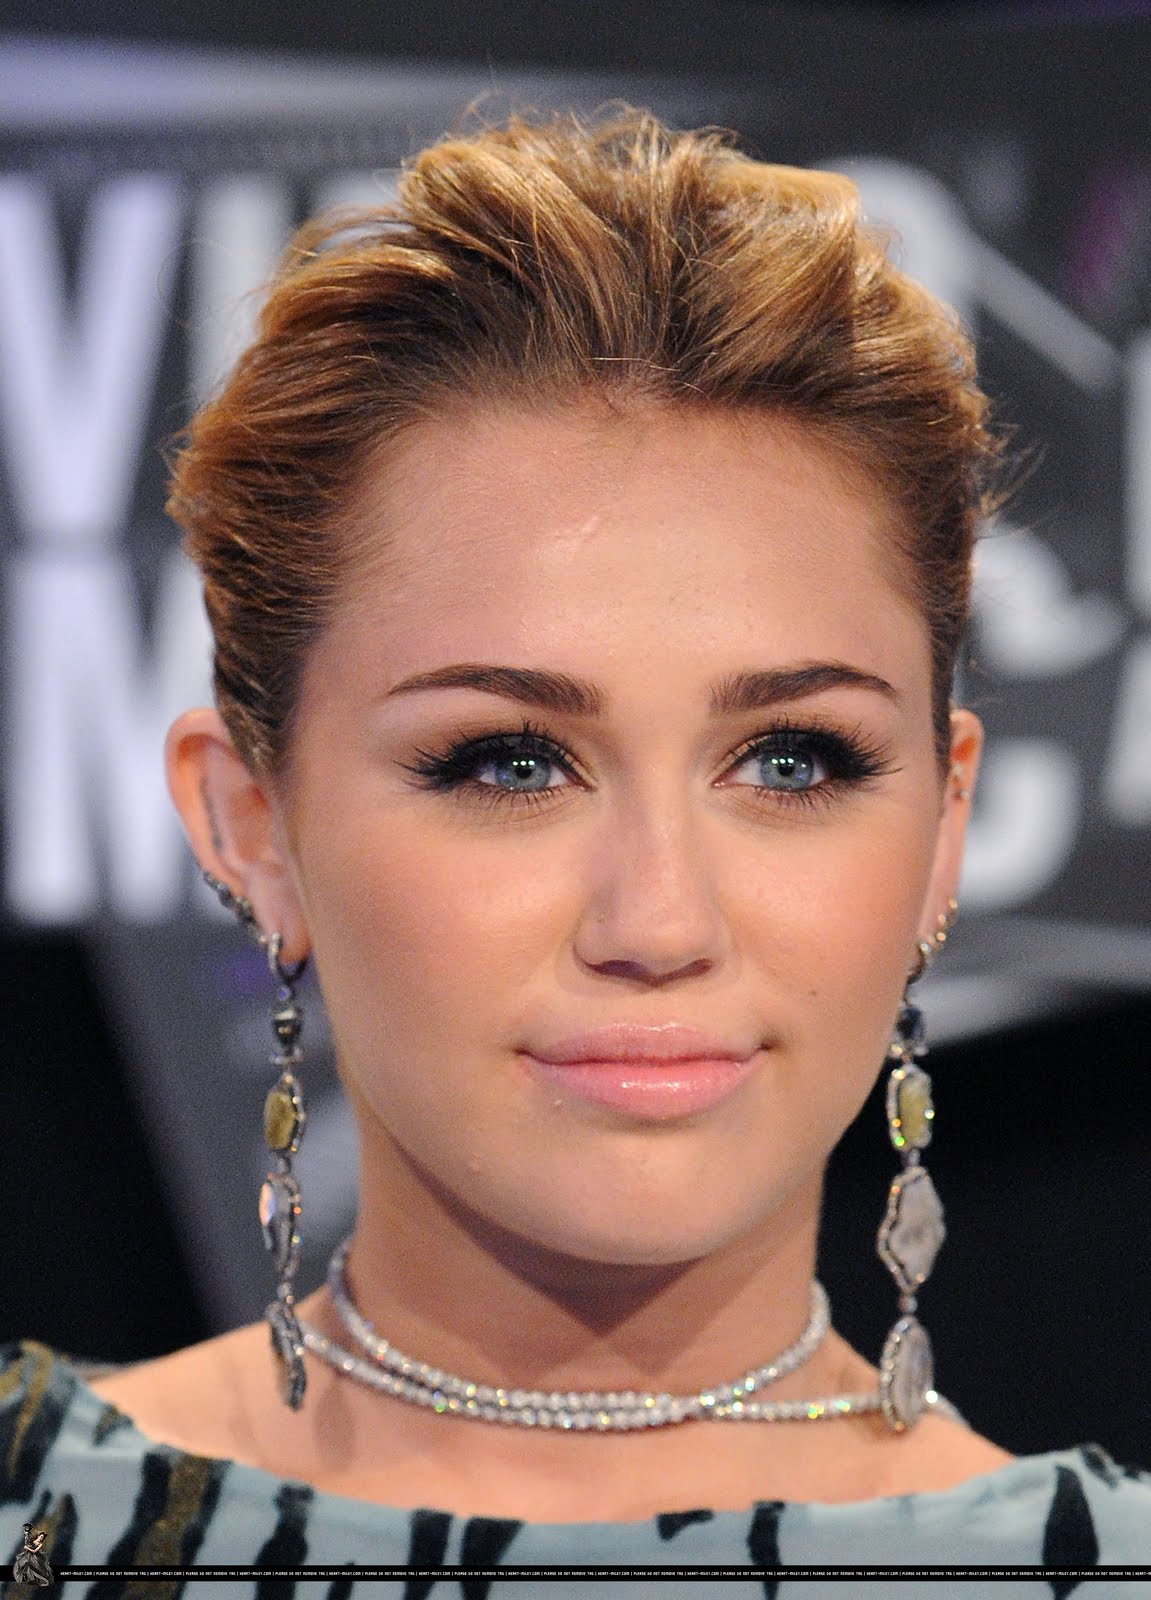 Miley Cyrus Eyes Posted by